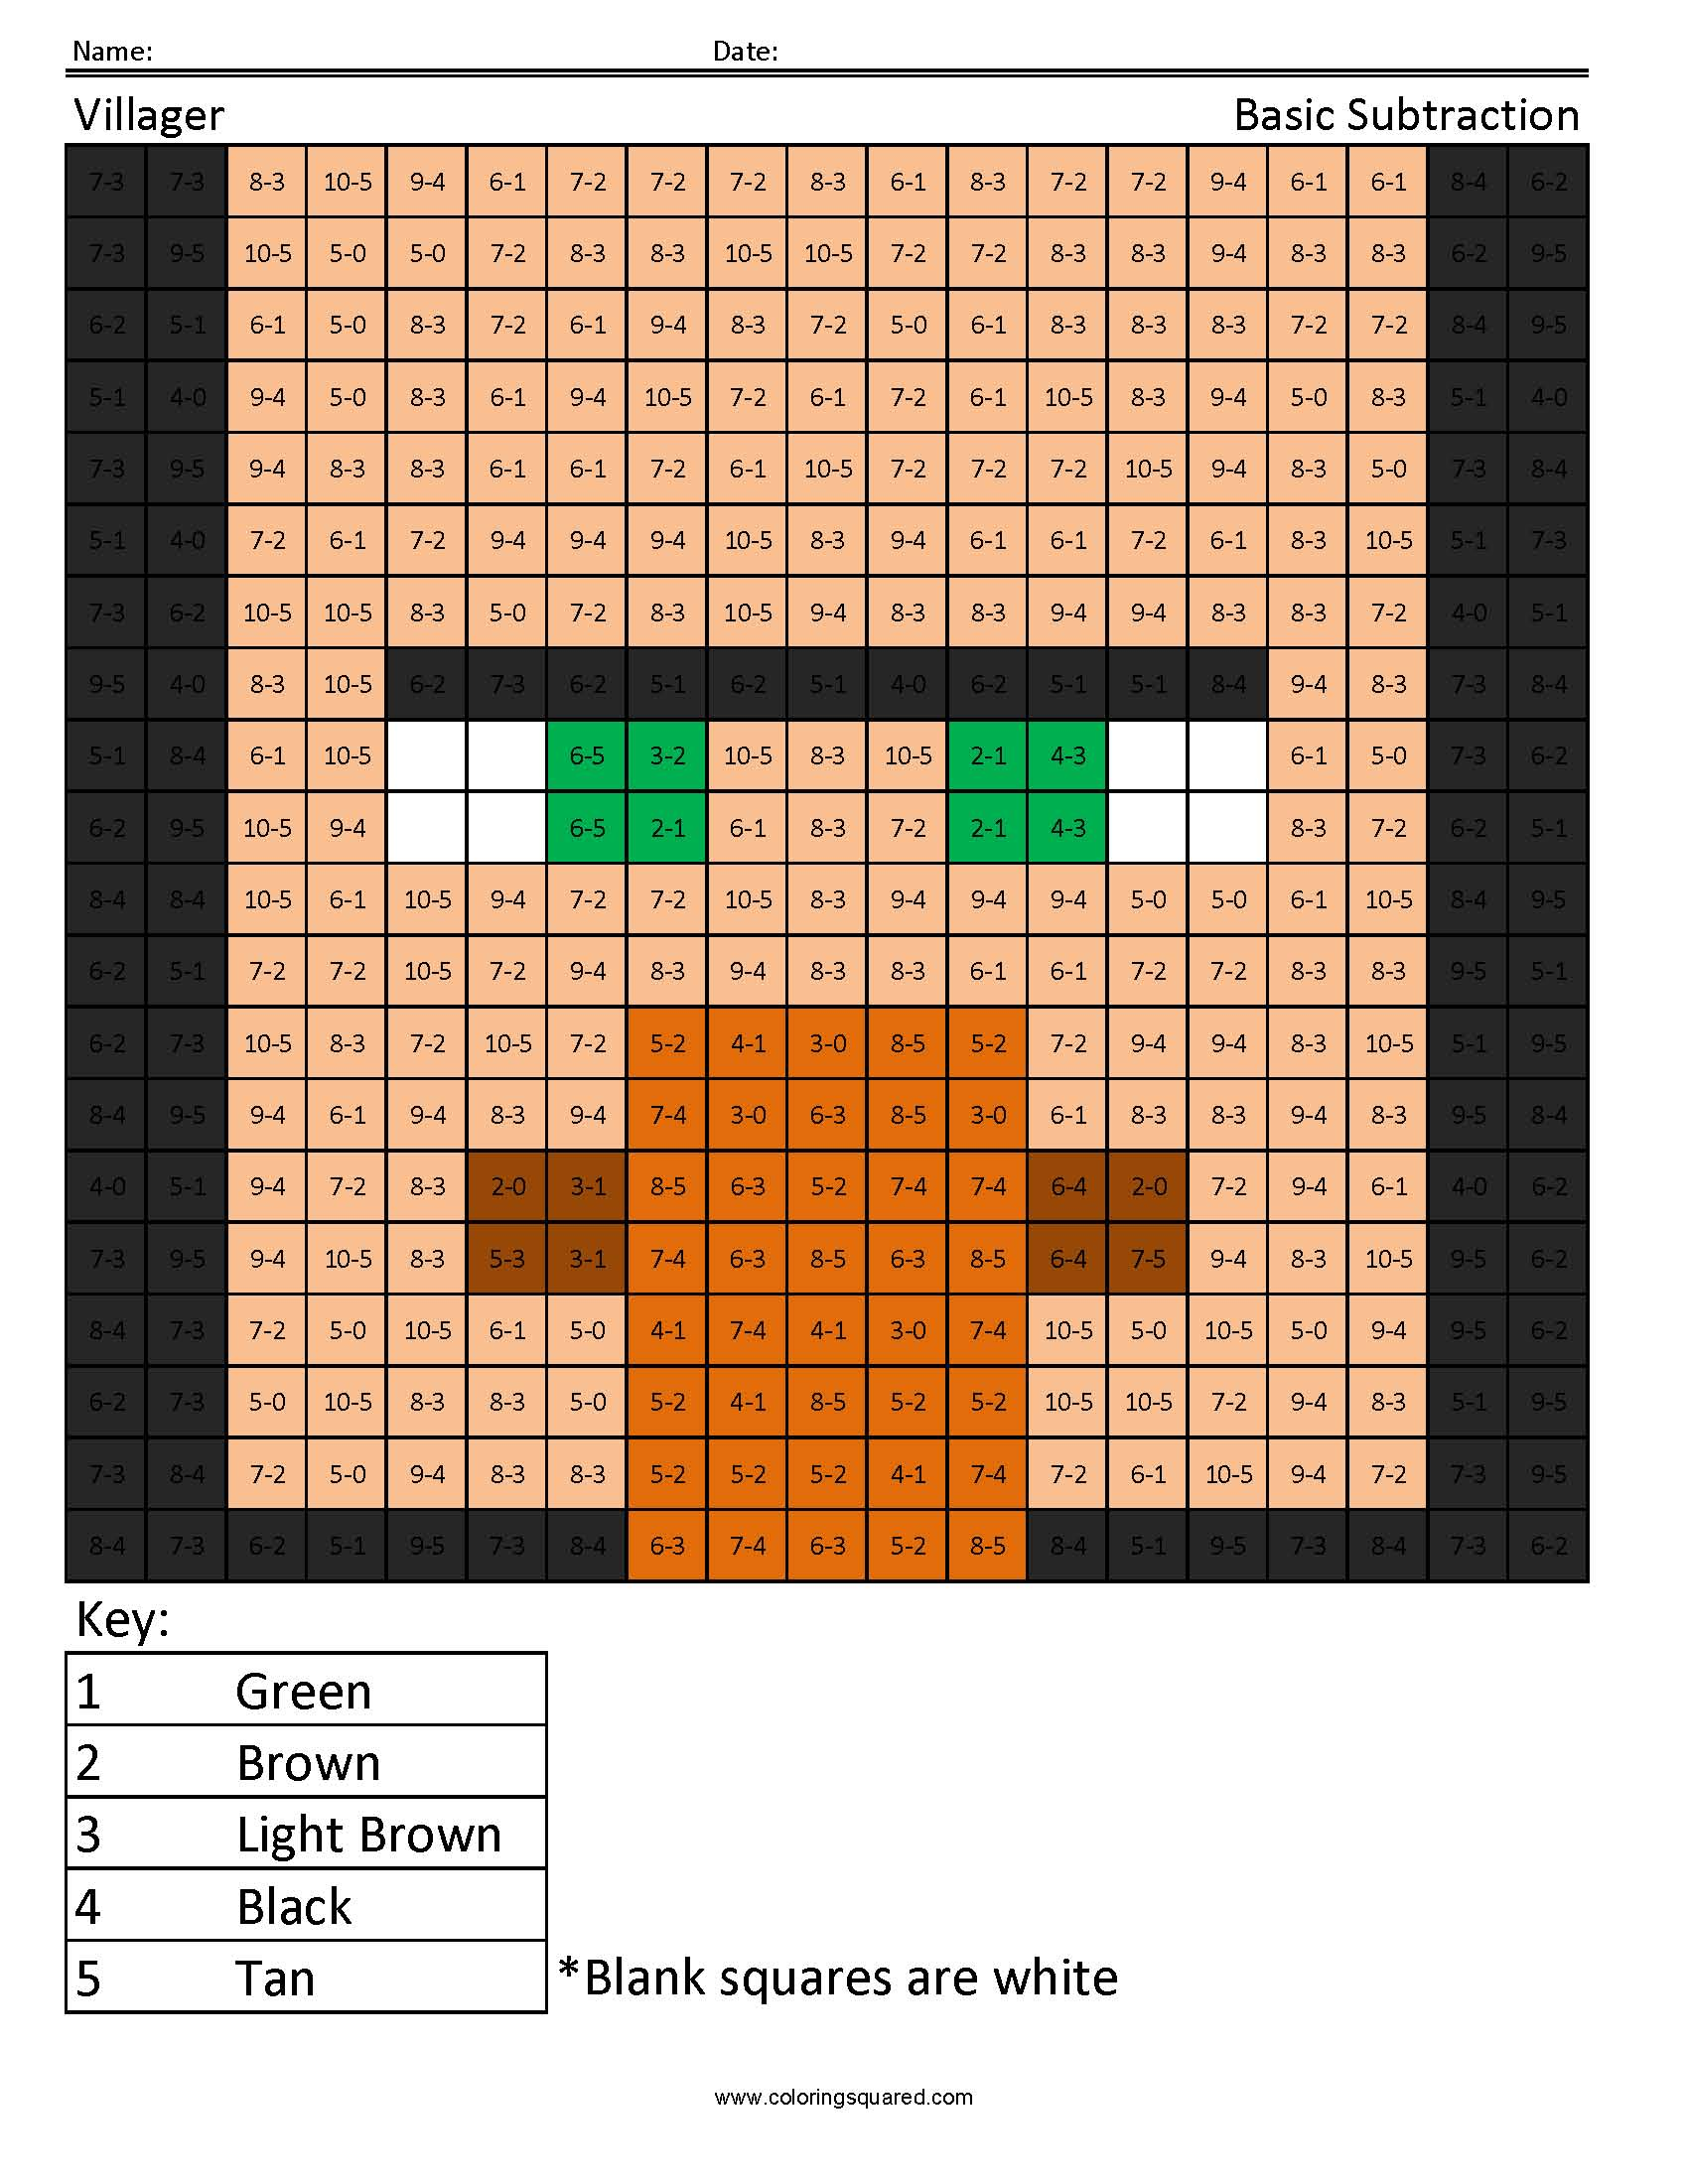 Villager Basic Subtraction